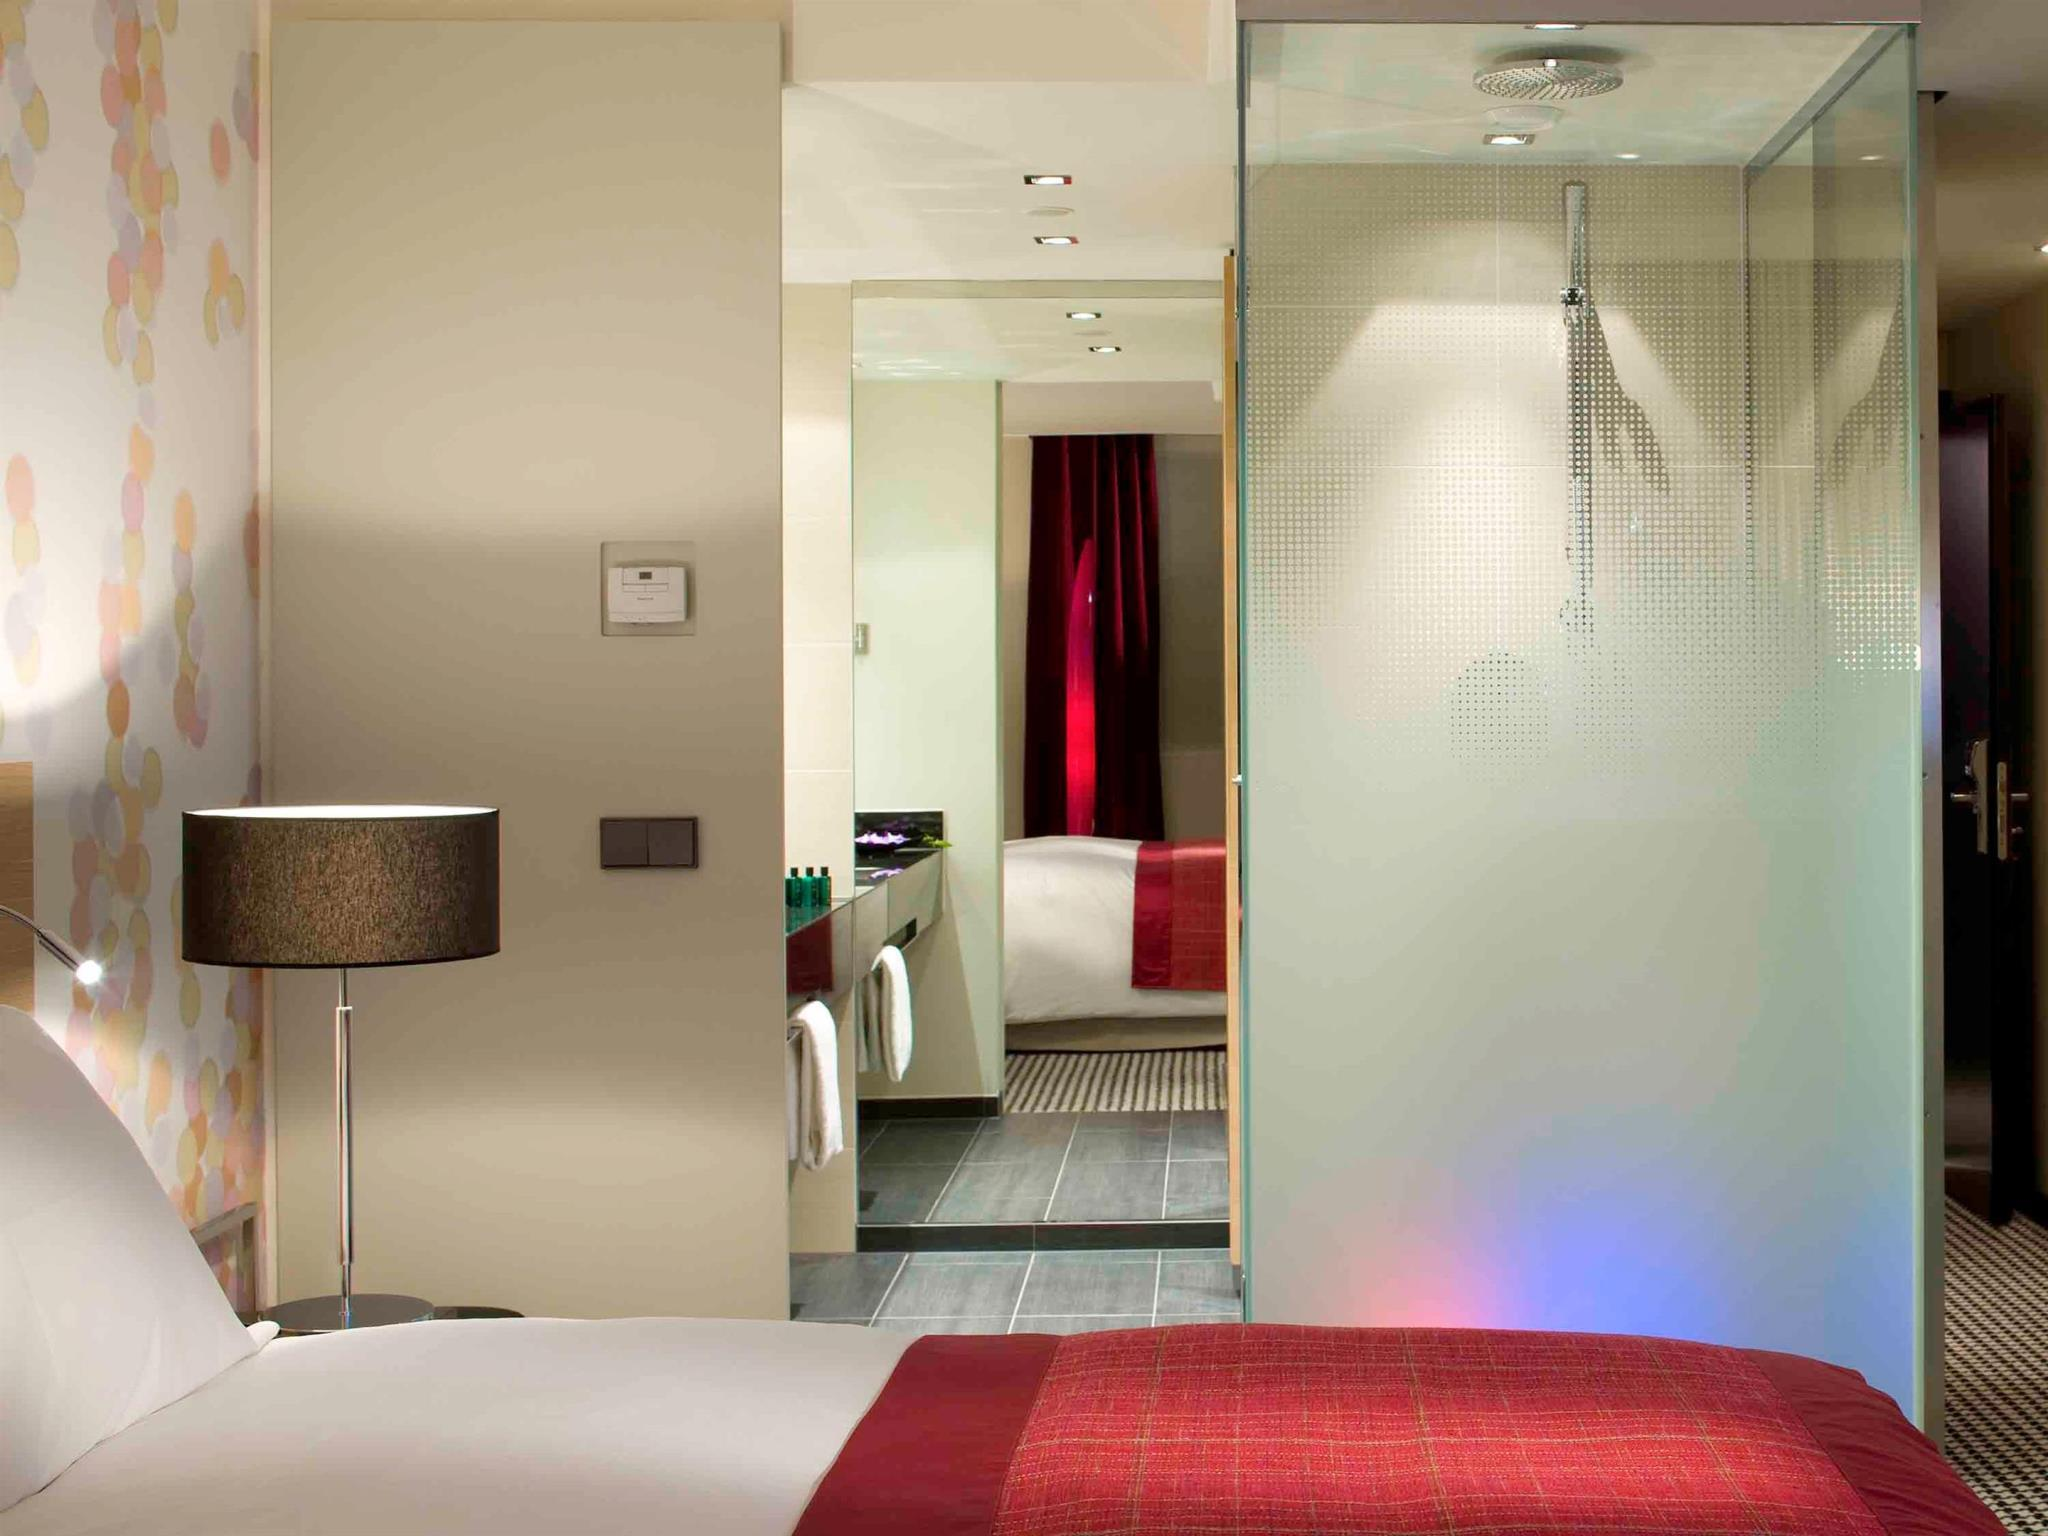 Sofitel Luxembourg Le Grand Ducal, Luxembourg